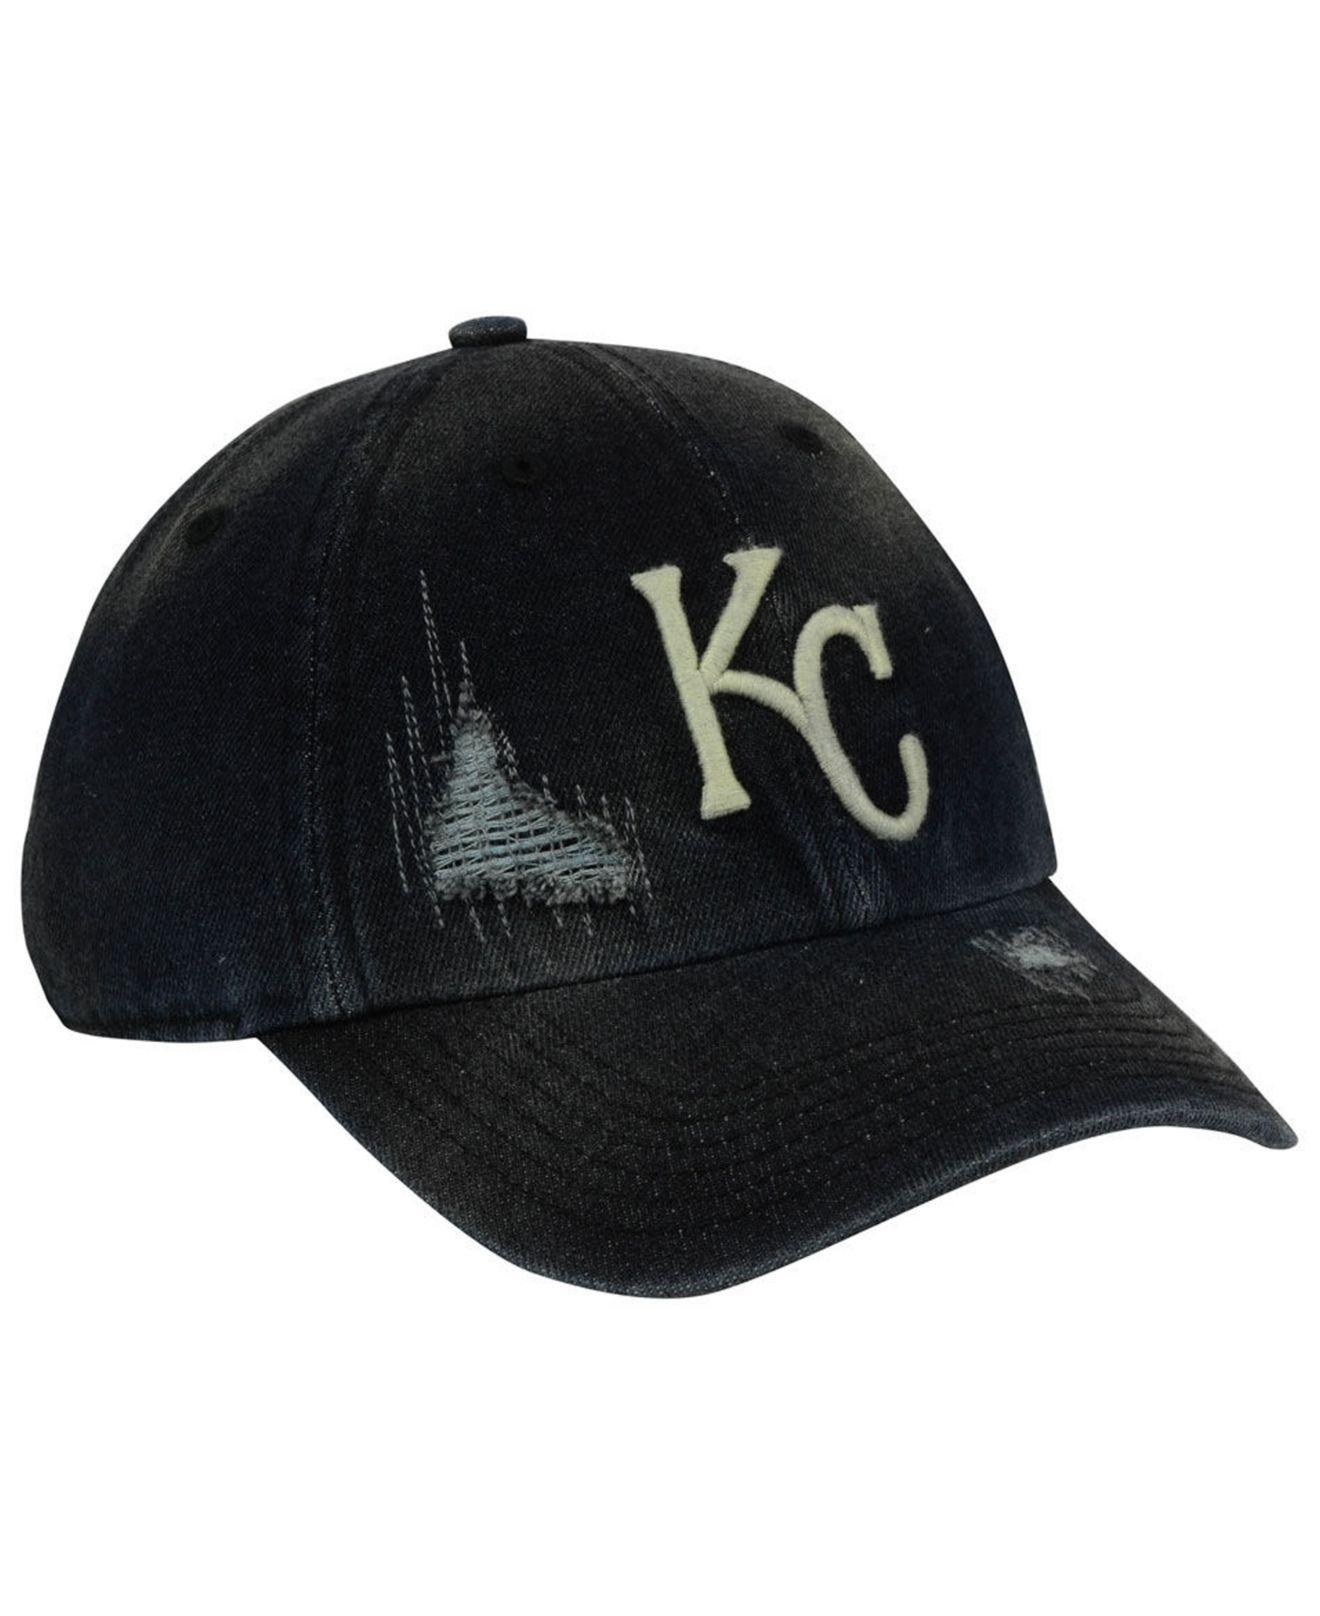 lowest price 40f9c 77e26 Lyst - 47 Brand Kansas City Royals Dark Horse Clean Up Cap in Black ...